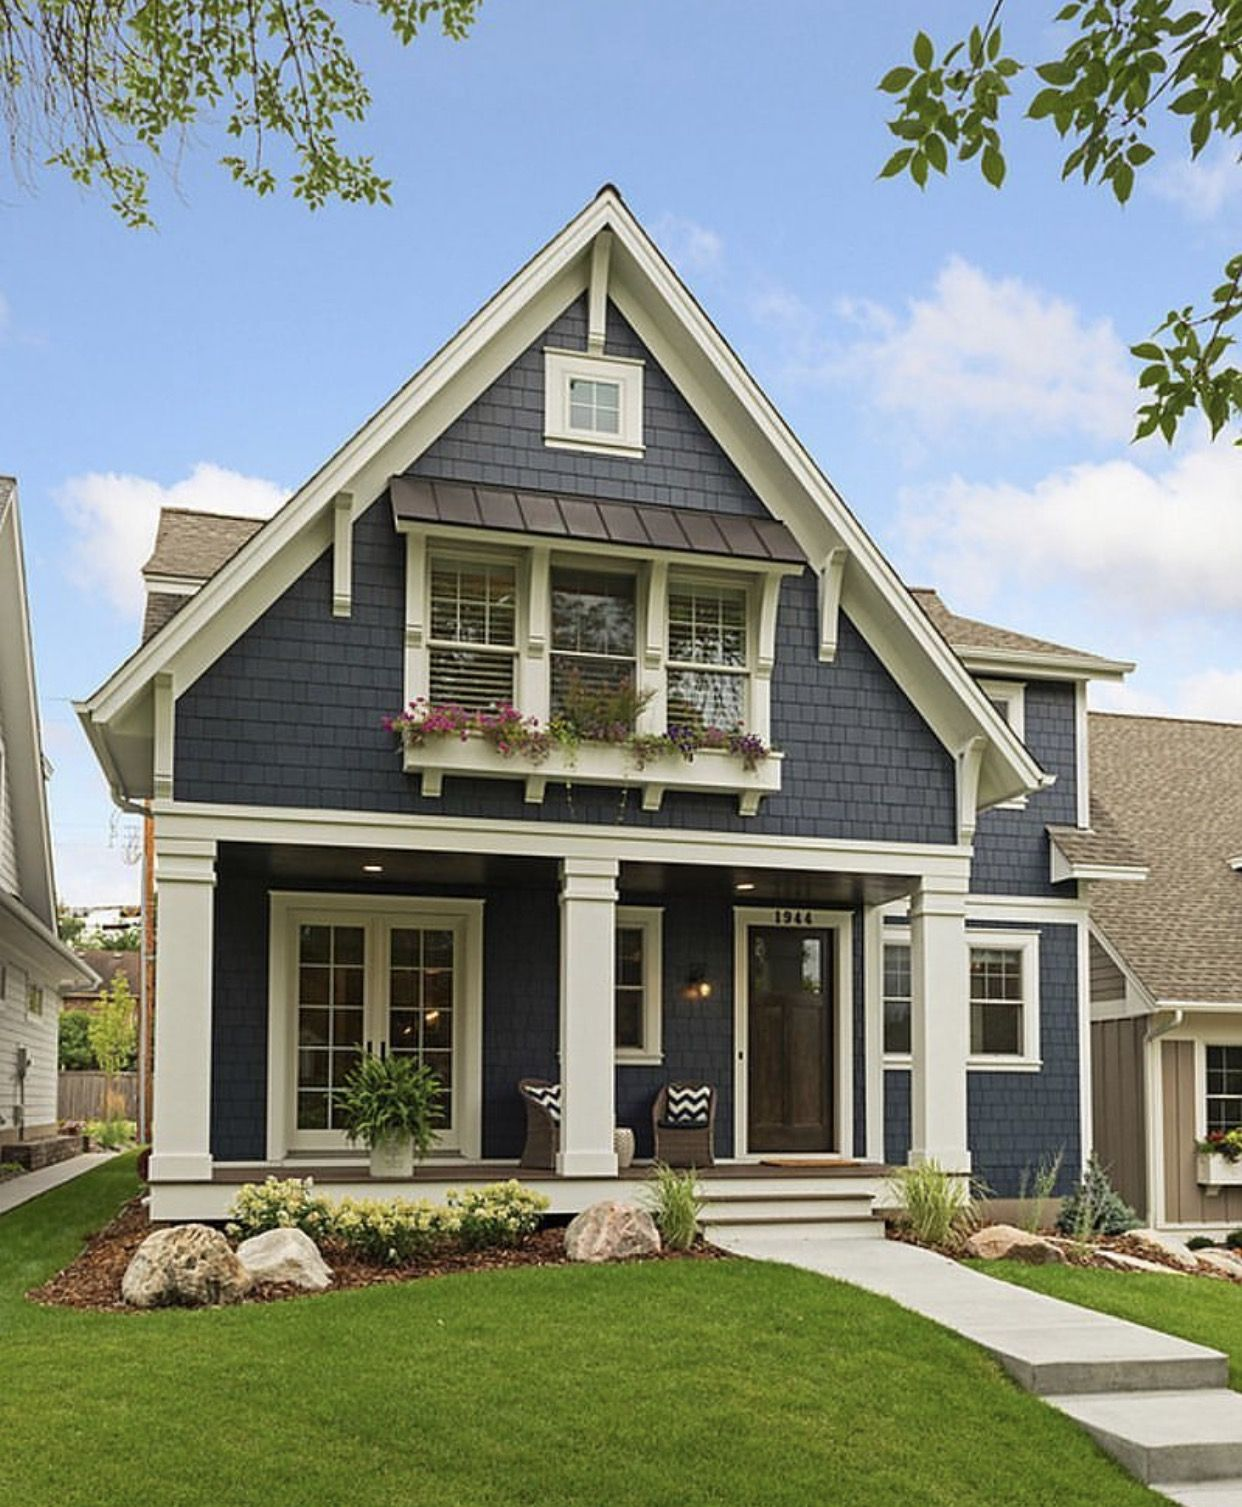 Gorgeous craftsman house | Modern farmhouse exterior, House ...